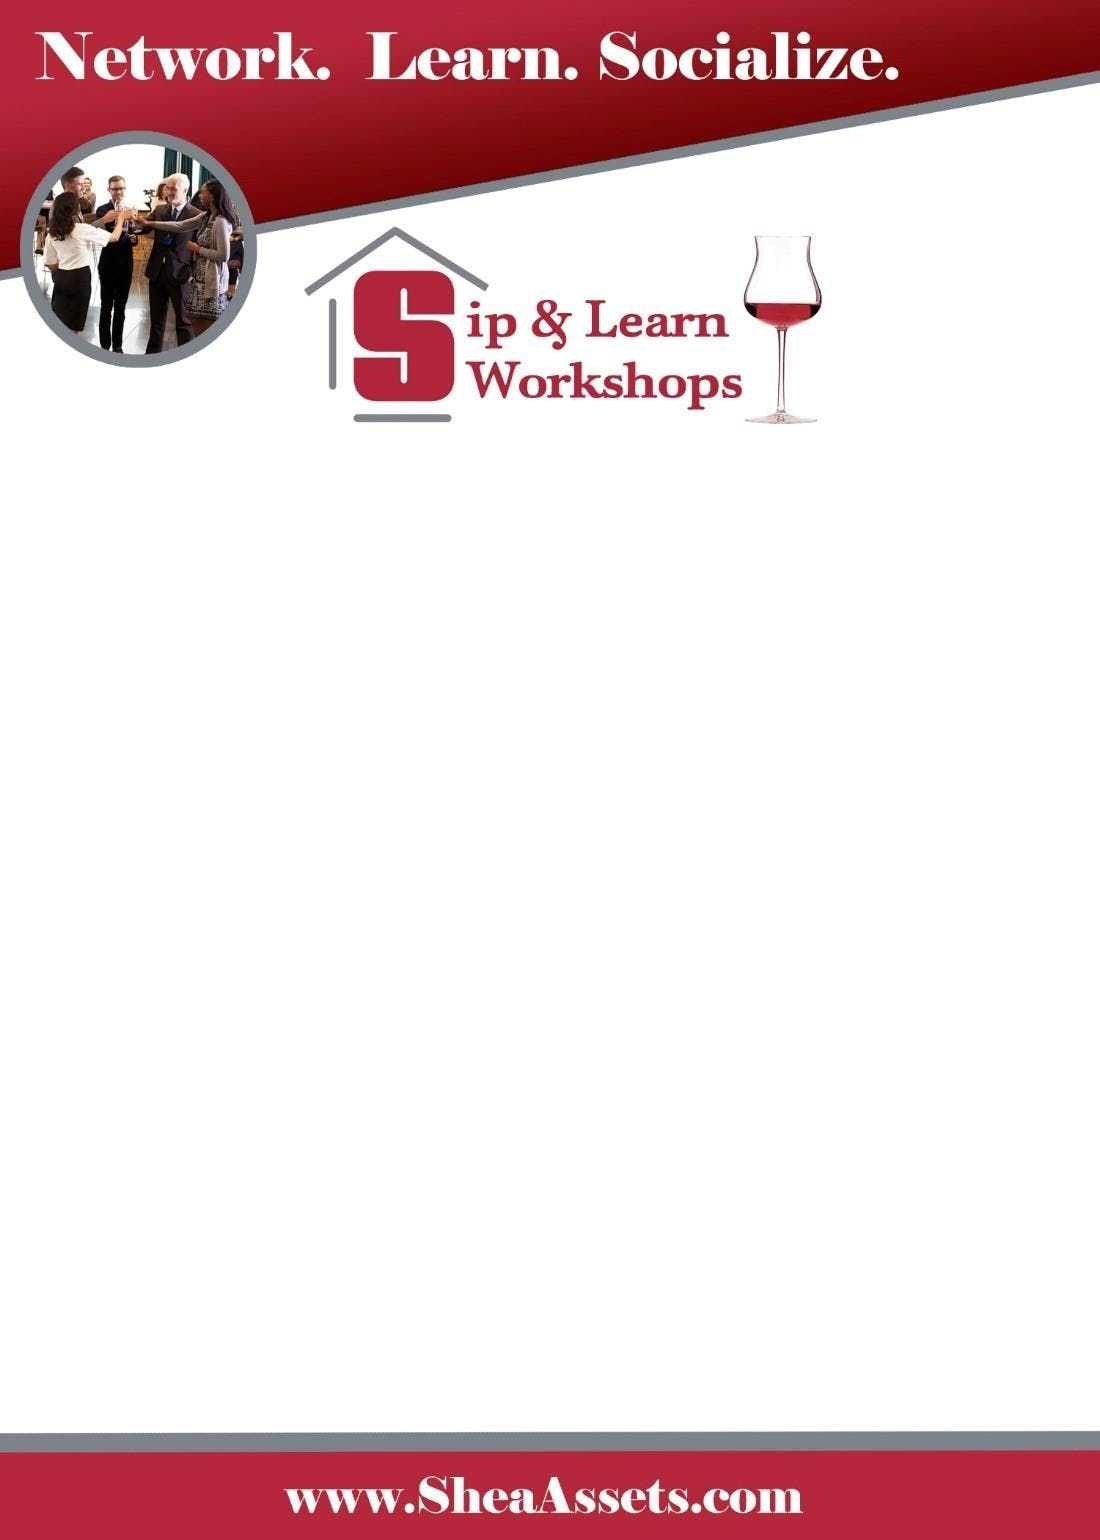 Sip & Learn Network - Learn - Socialize